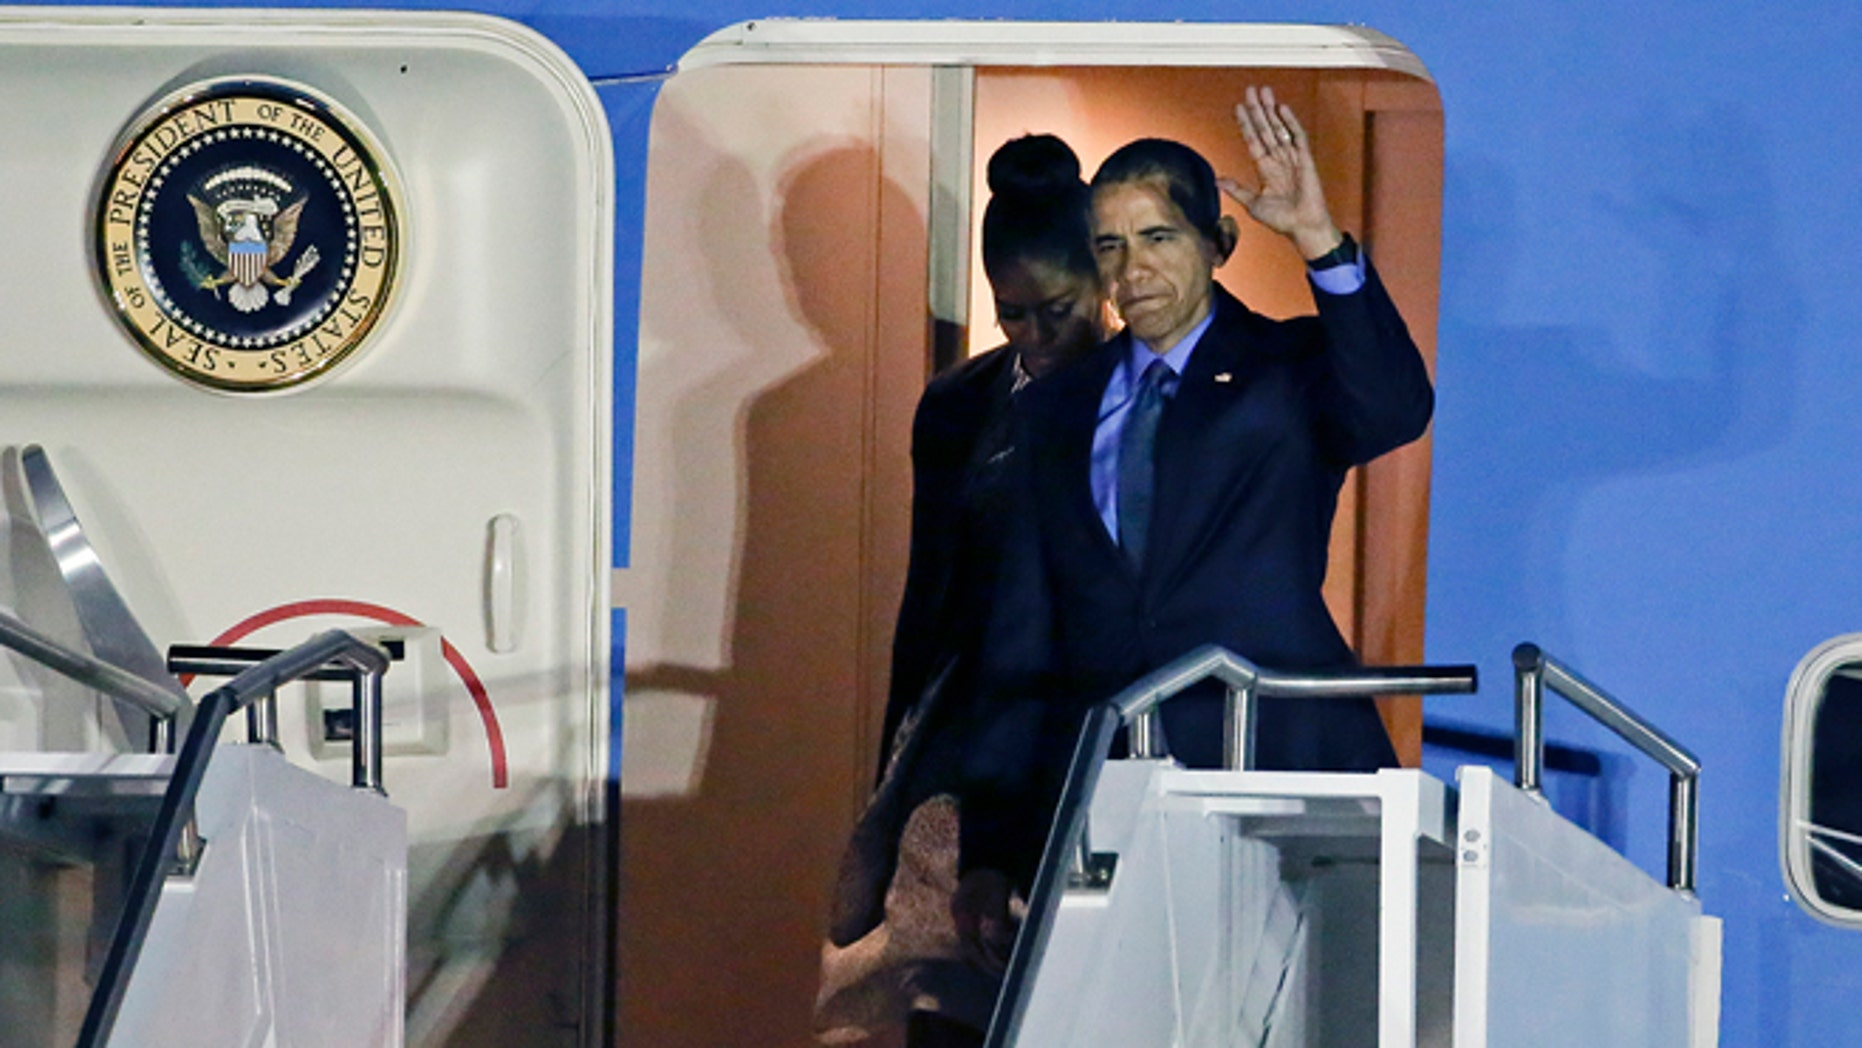 President Barack Obama, right, and first lady Michelle Obama, arrive at San Bernardino International Airport, on Friday, Dec. 18, 2015, in San Bernardino, Calif. Obama is meeting with families of the victims of a mass shooting that struck the community. (AP Photo/Chris Carlson)